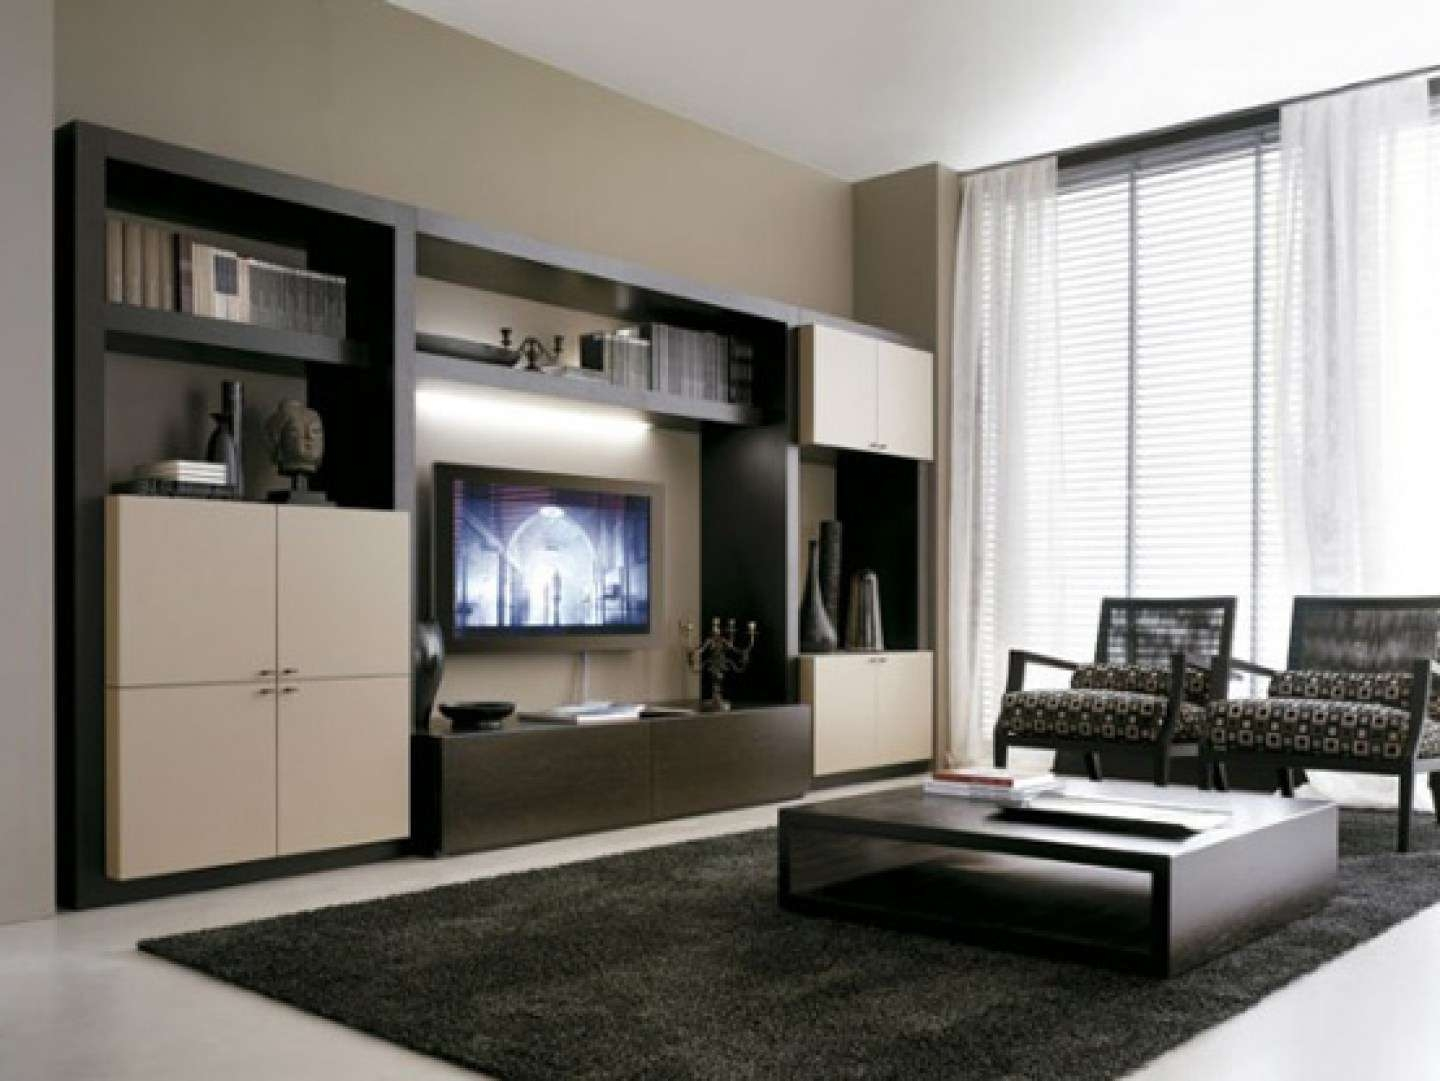 20 Modern Tv Unit Design Ideas For Bedroom Living Room With Intended For Stylish Tv Cabinets (View 20 of 20)